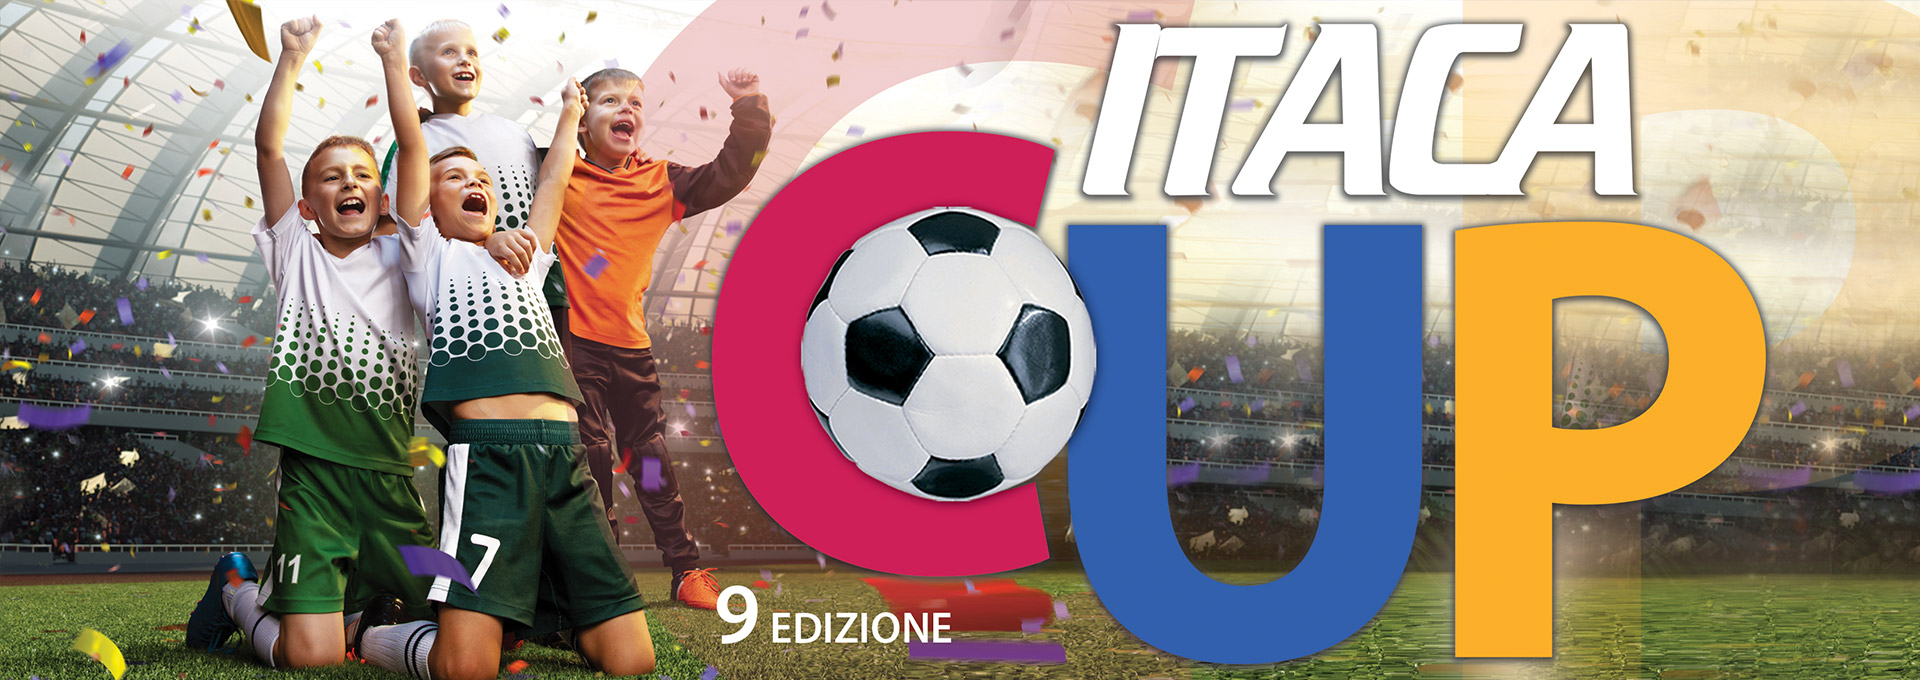 banner_itacacup_2019